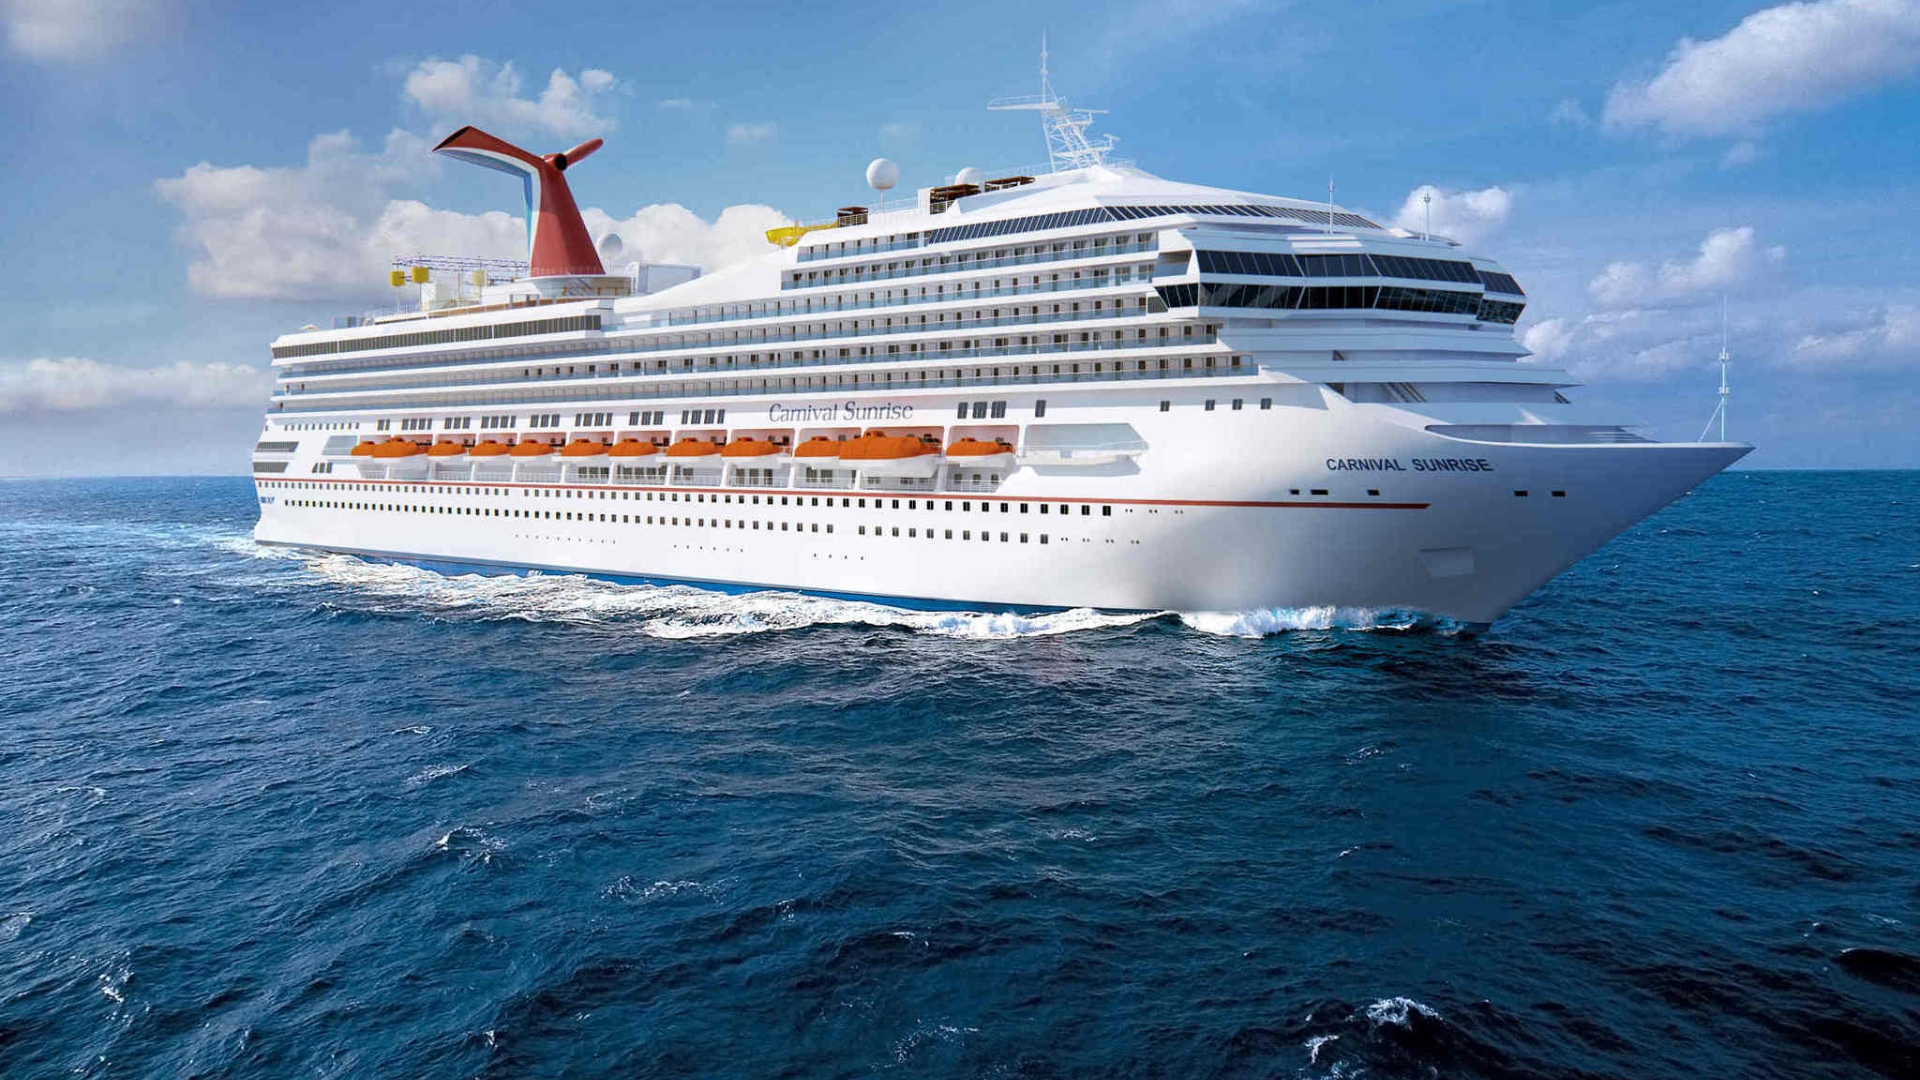 Carnival Halloween Cruise 2019.Carnival Triumph To Become Carnival Sunrise After 200